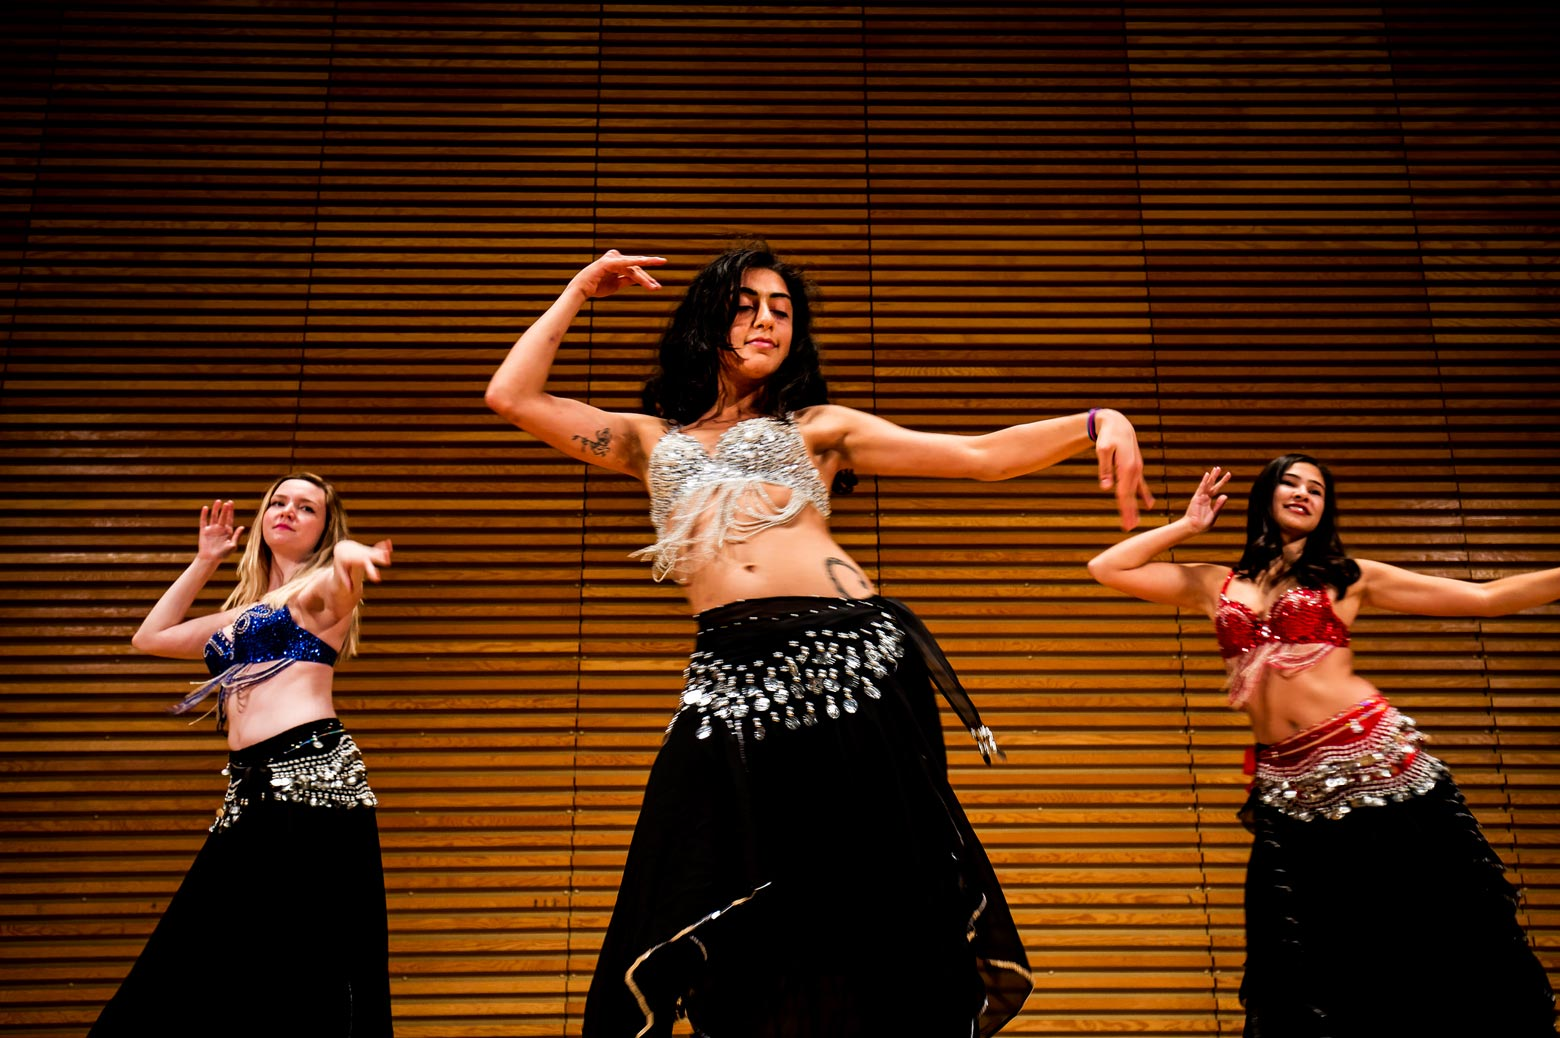 Hipnotics Belly Dance Ensemble performs on stage